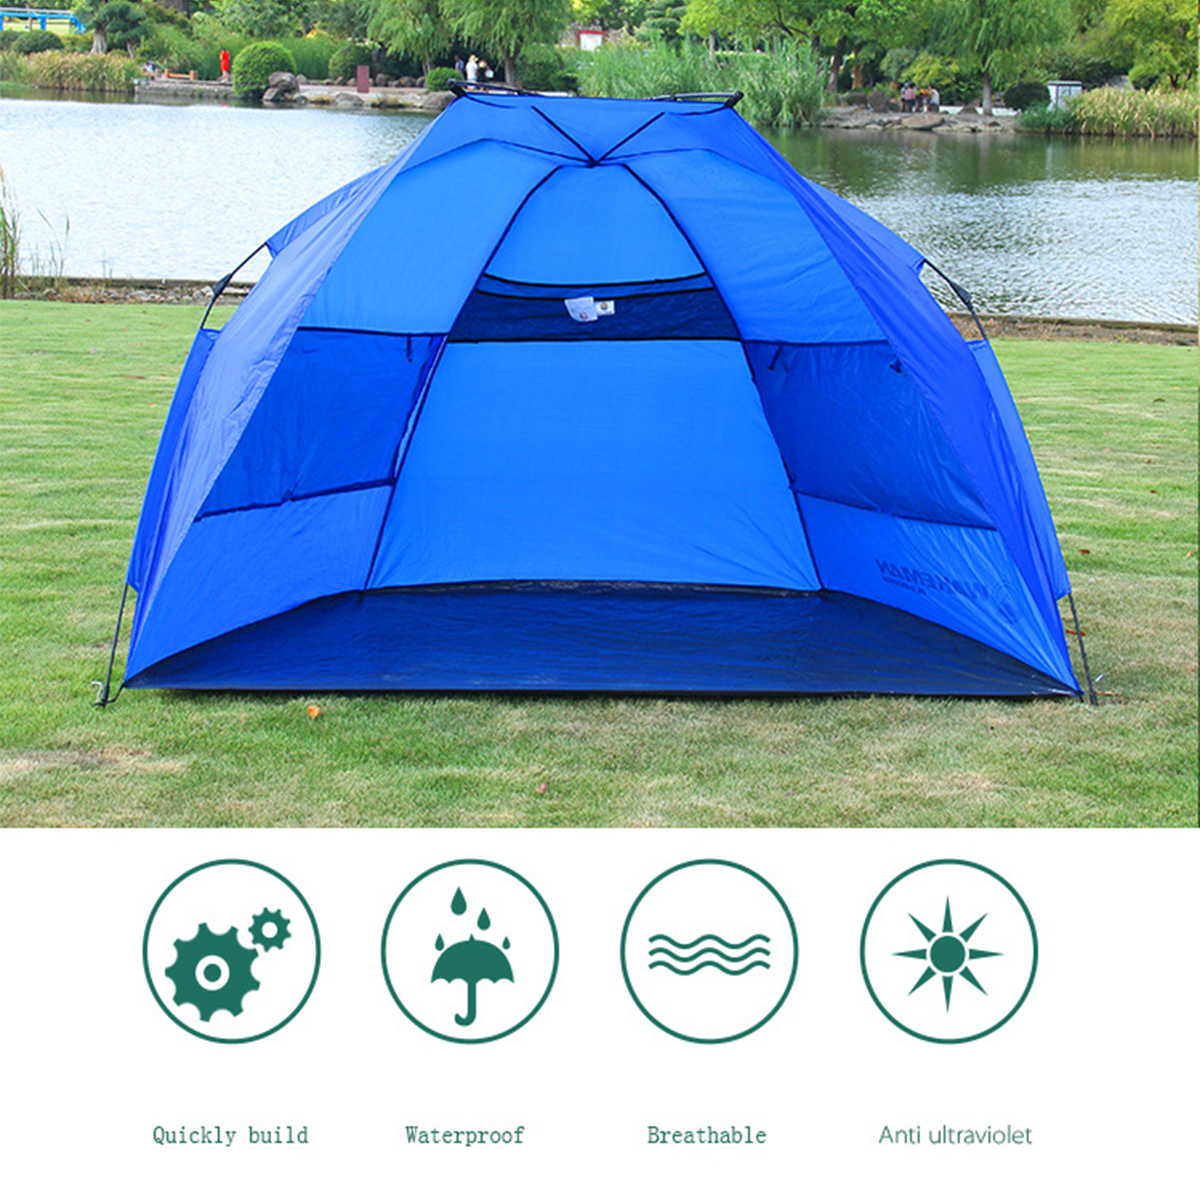 Outdoor Automatic Tents Tent Folding Family Travel Quick Shelter Tent Waterproof Fishing Camping Beach Tent Sun ShelterOutdoor Automatic Tents Tent Folding Family Travel Quick Shelter Tent Waterproof Fishing Camping Beach Tent Sun Shelter